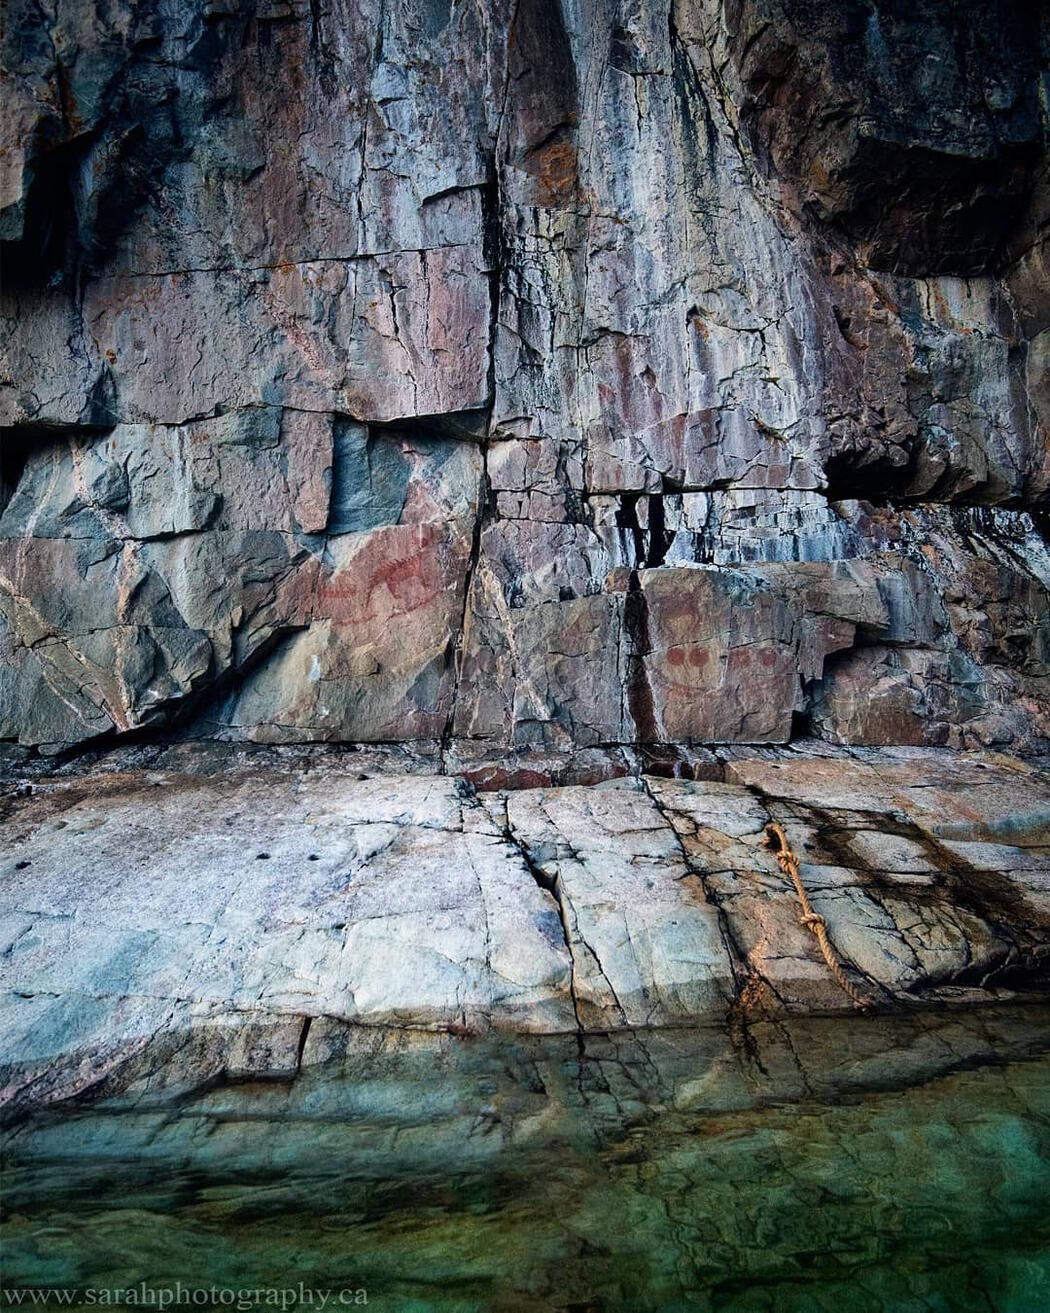 Red pictograph on a vertical rock face.